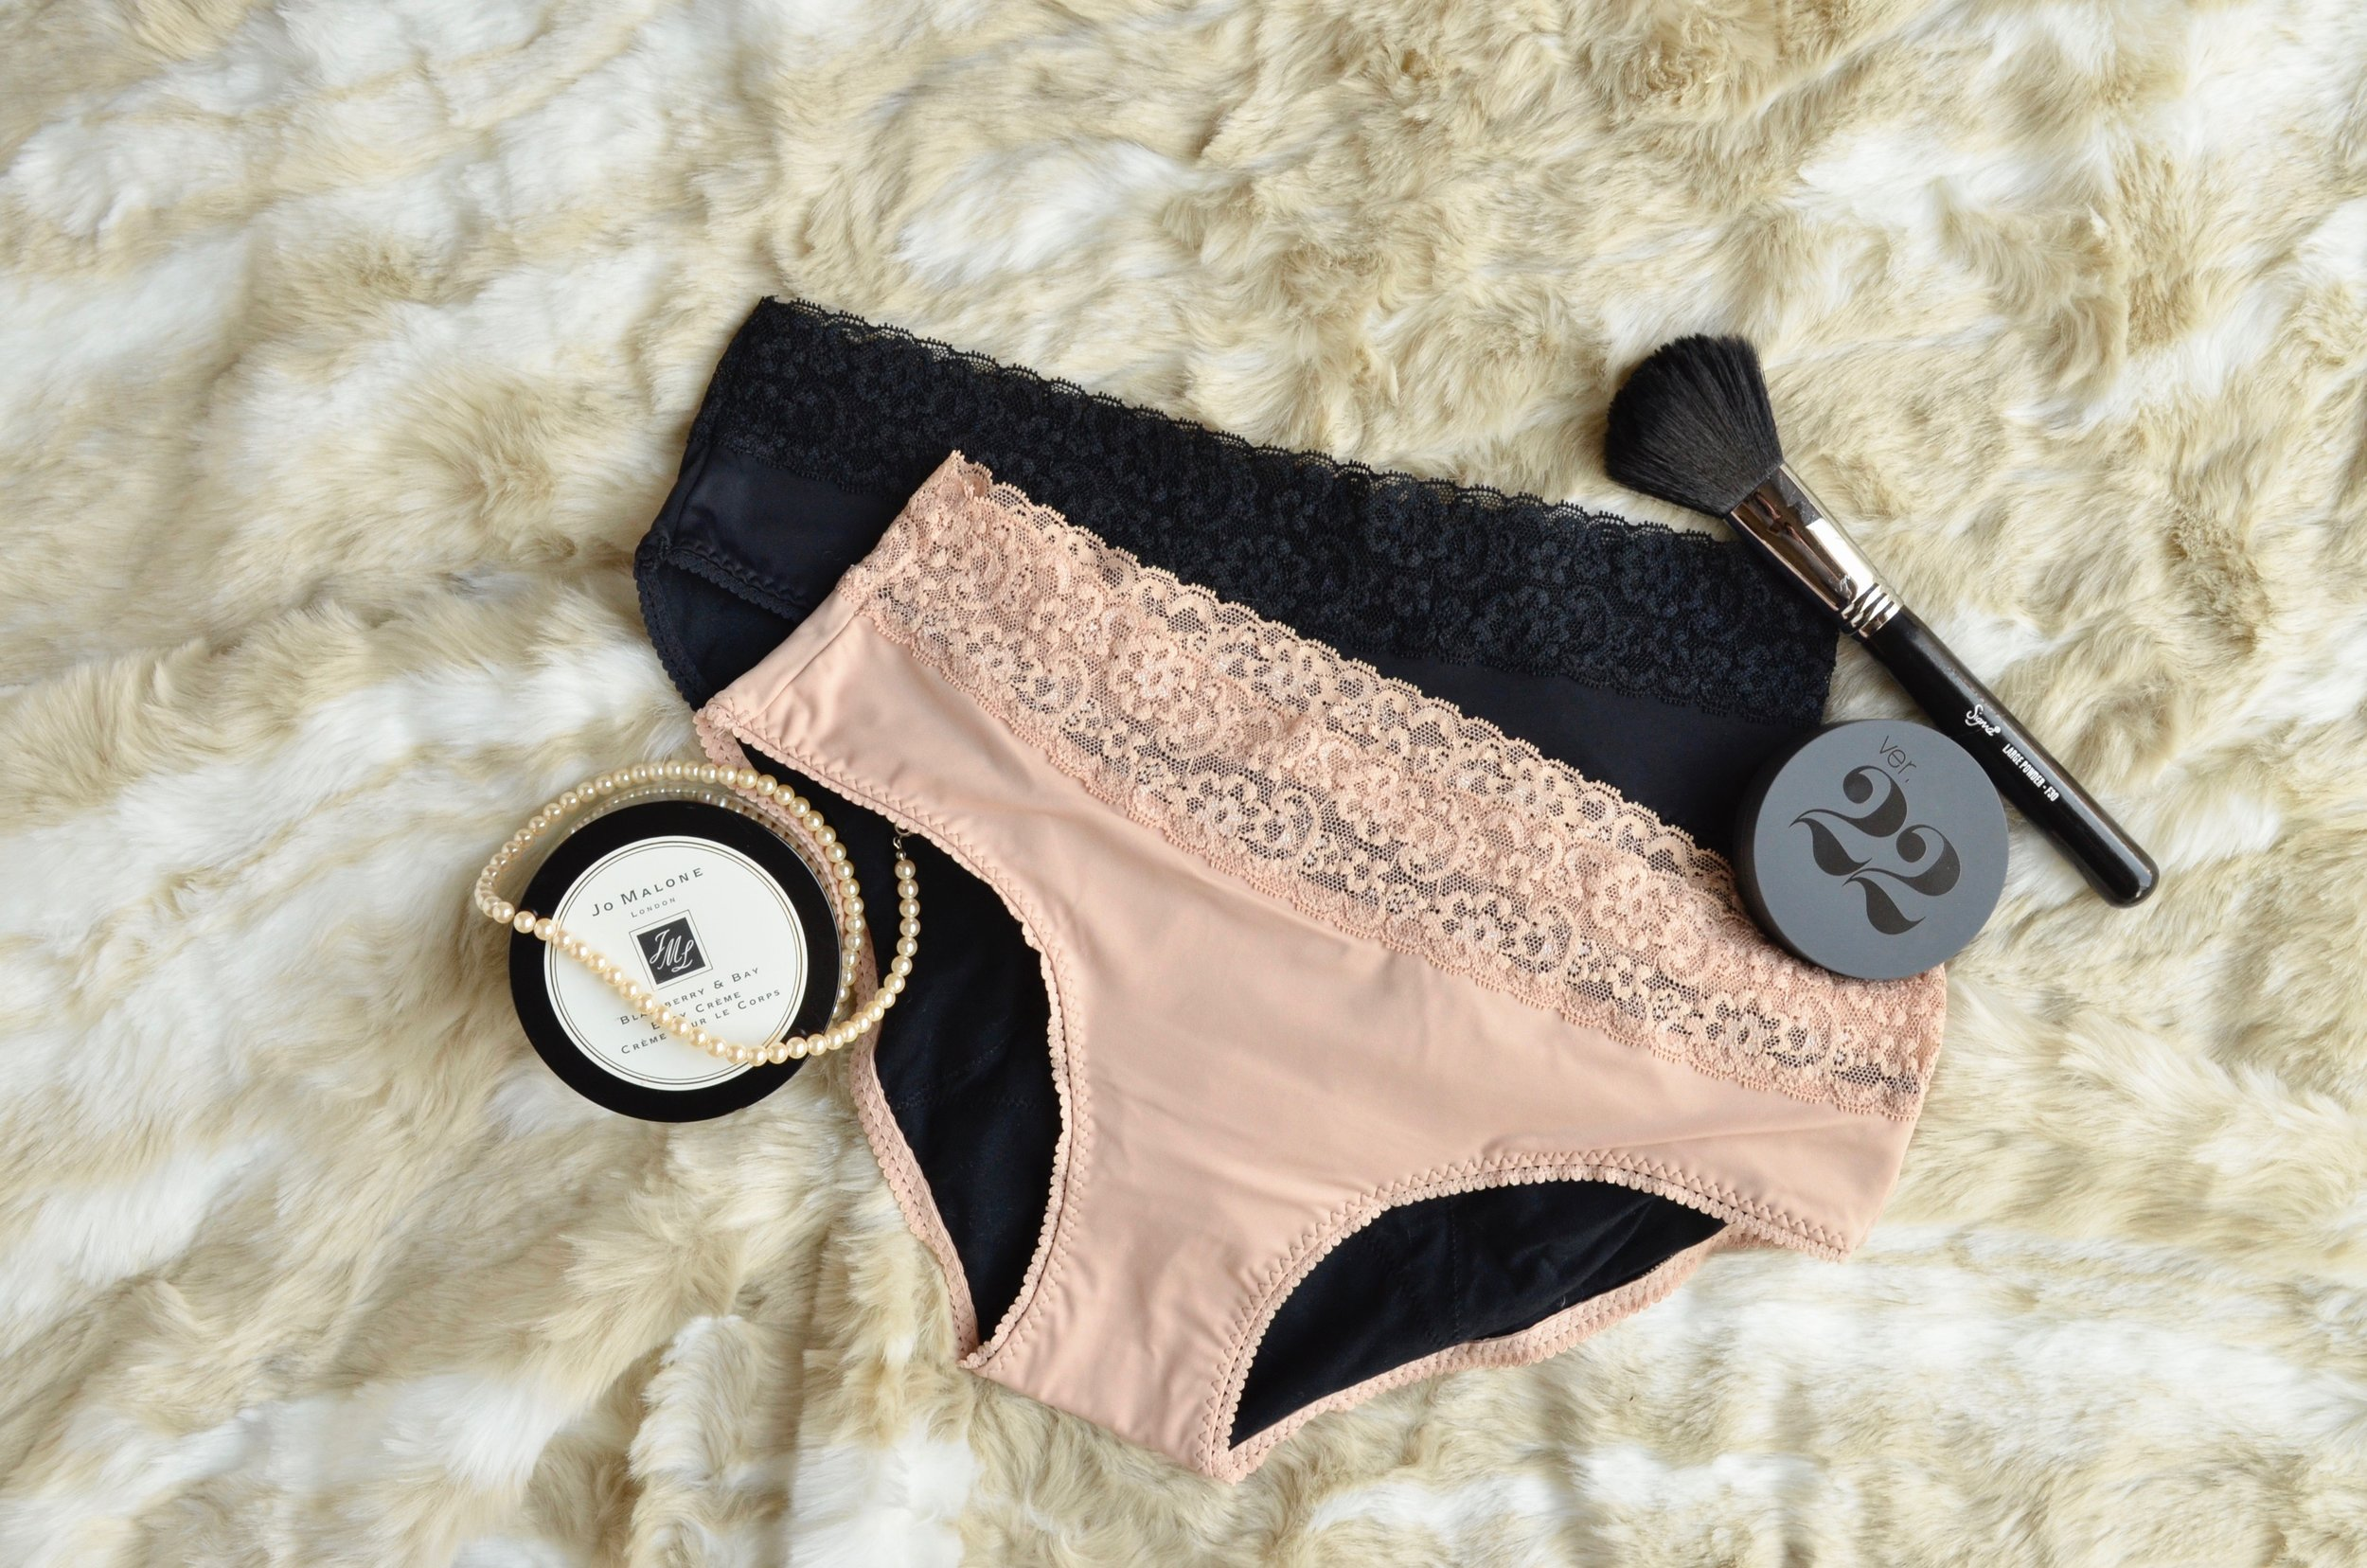 THINX-Period-Panty-Review_DSC0115.jpg